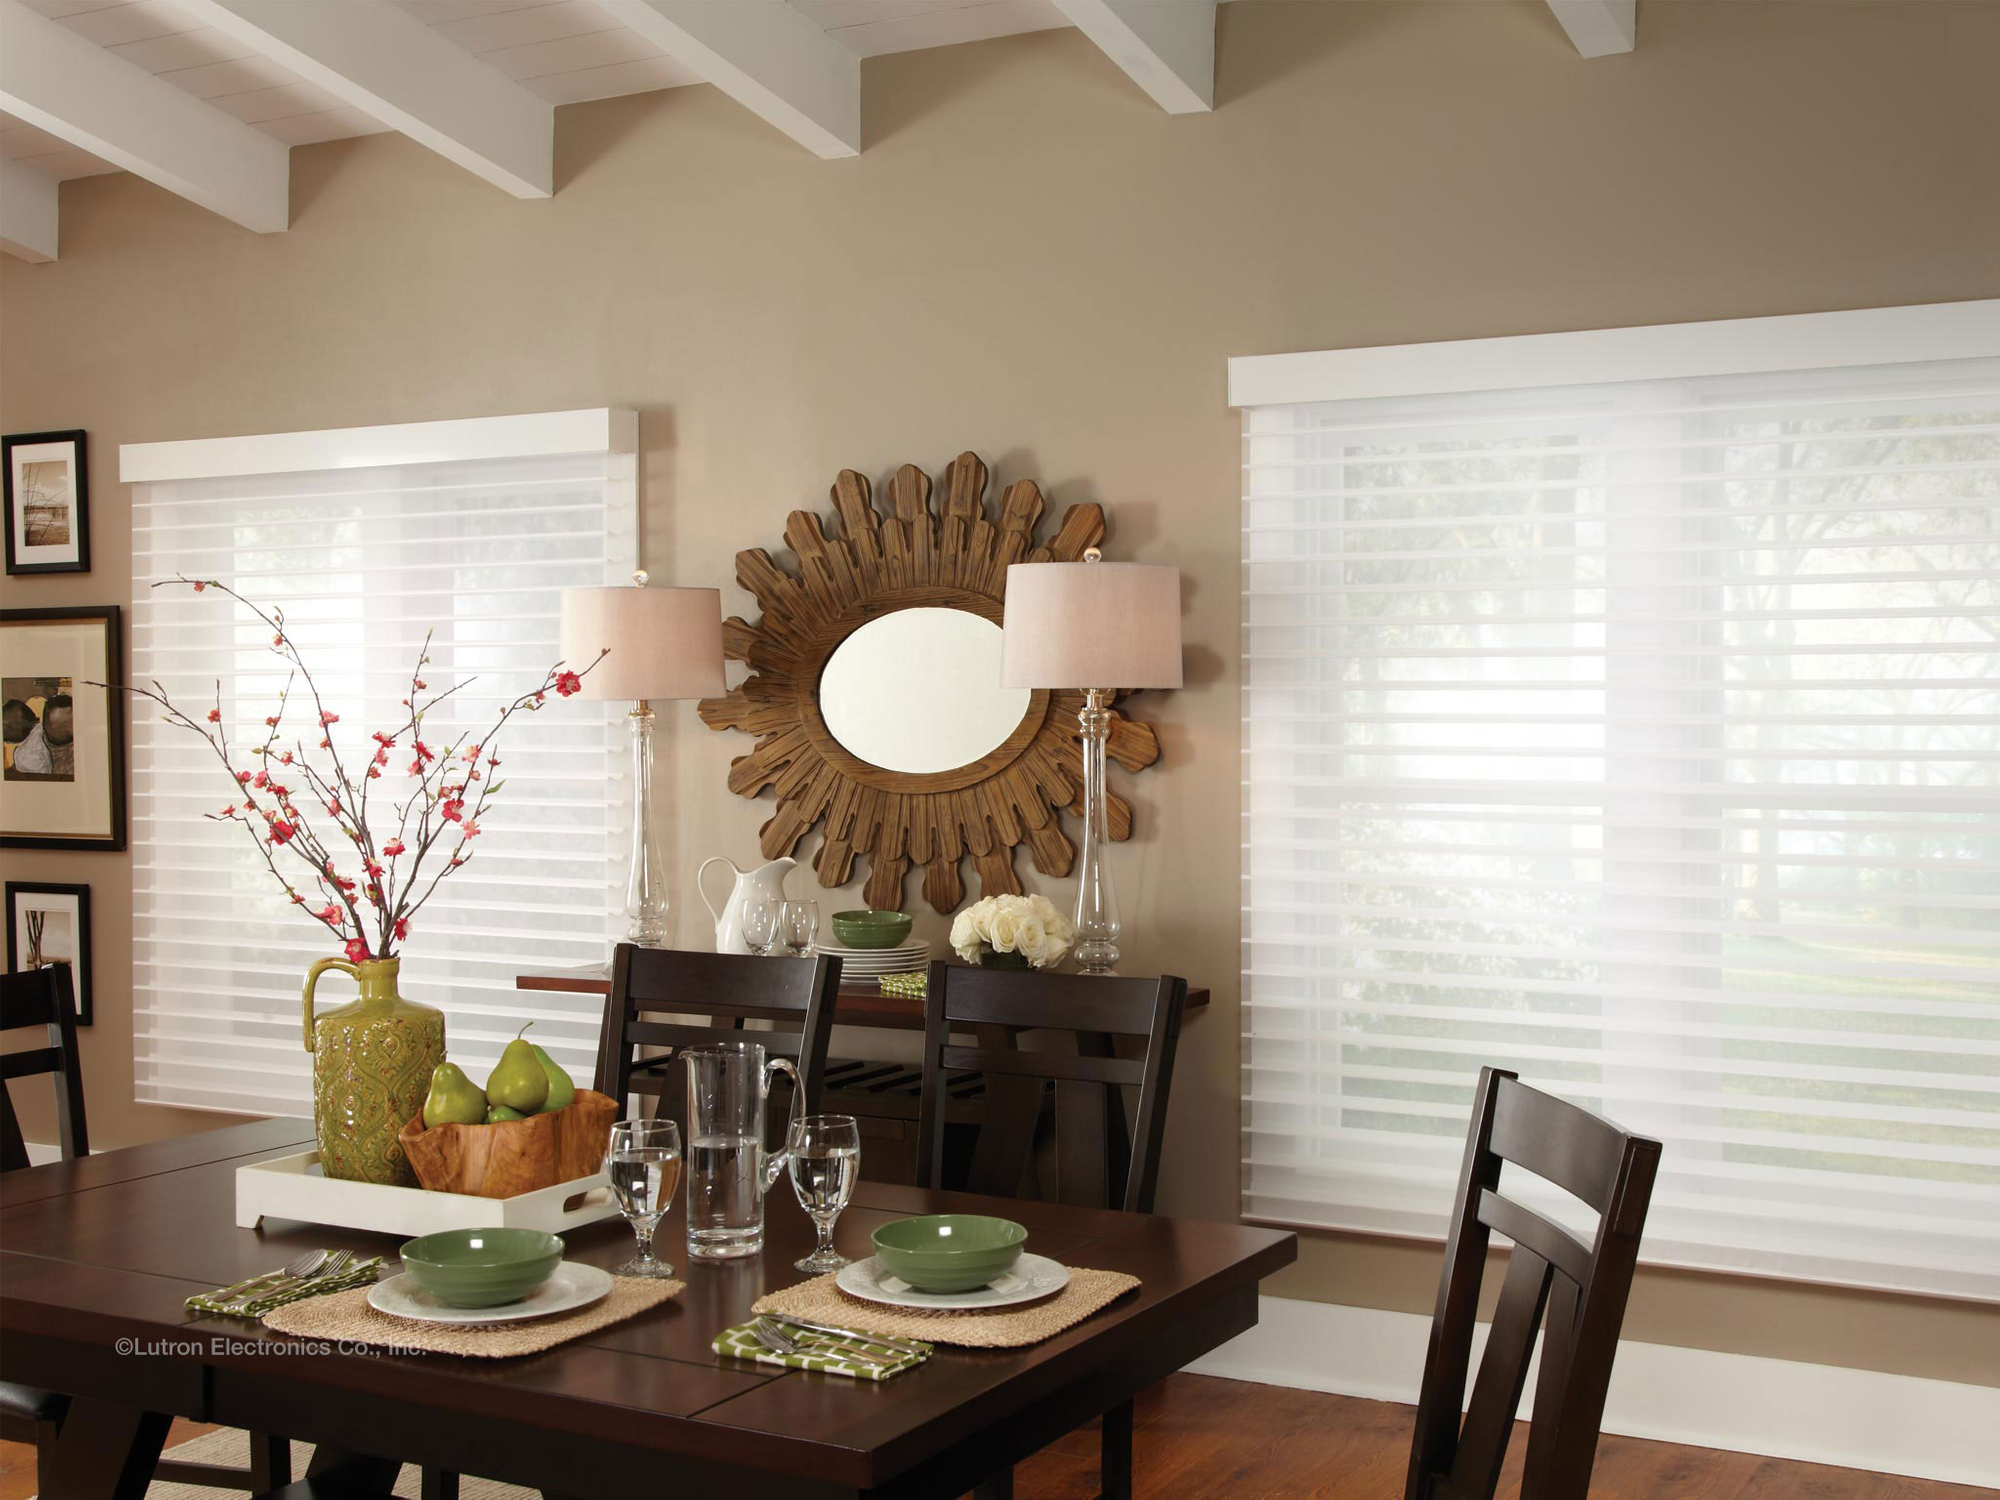 Austin Horizontal Sheer Blinds